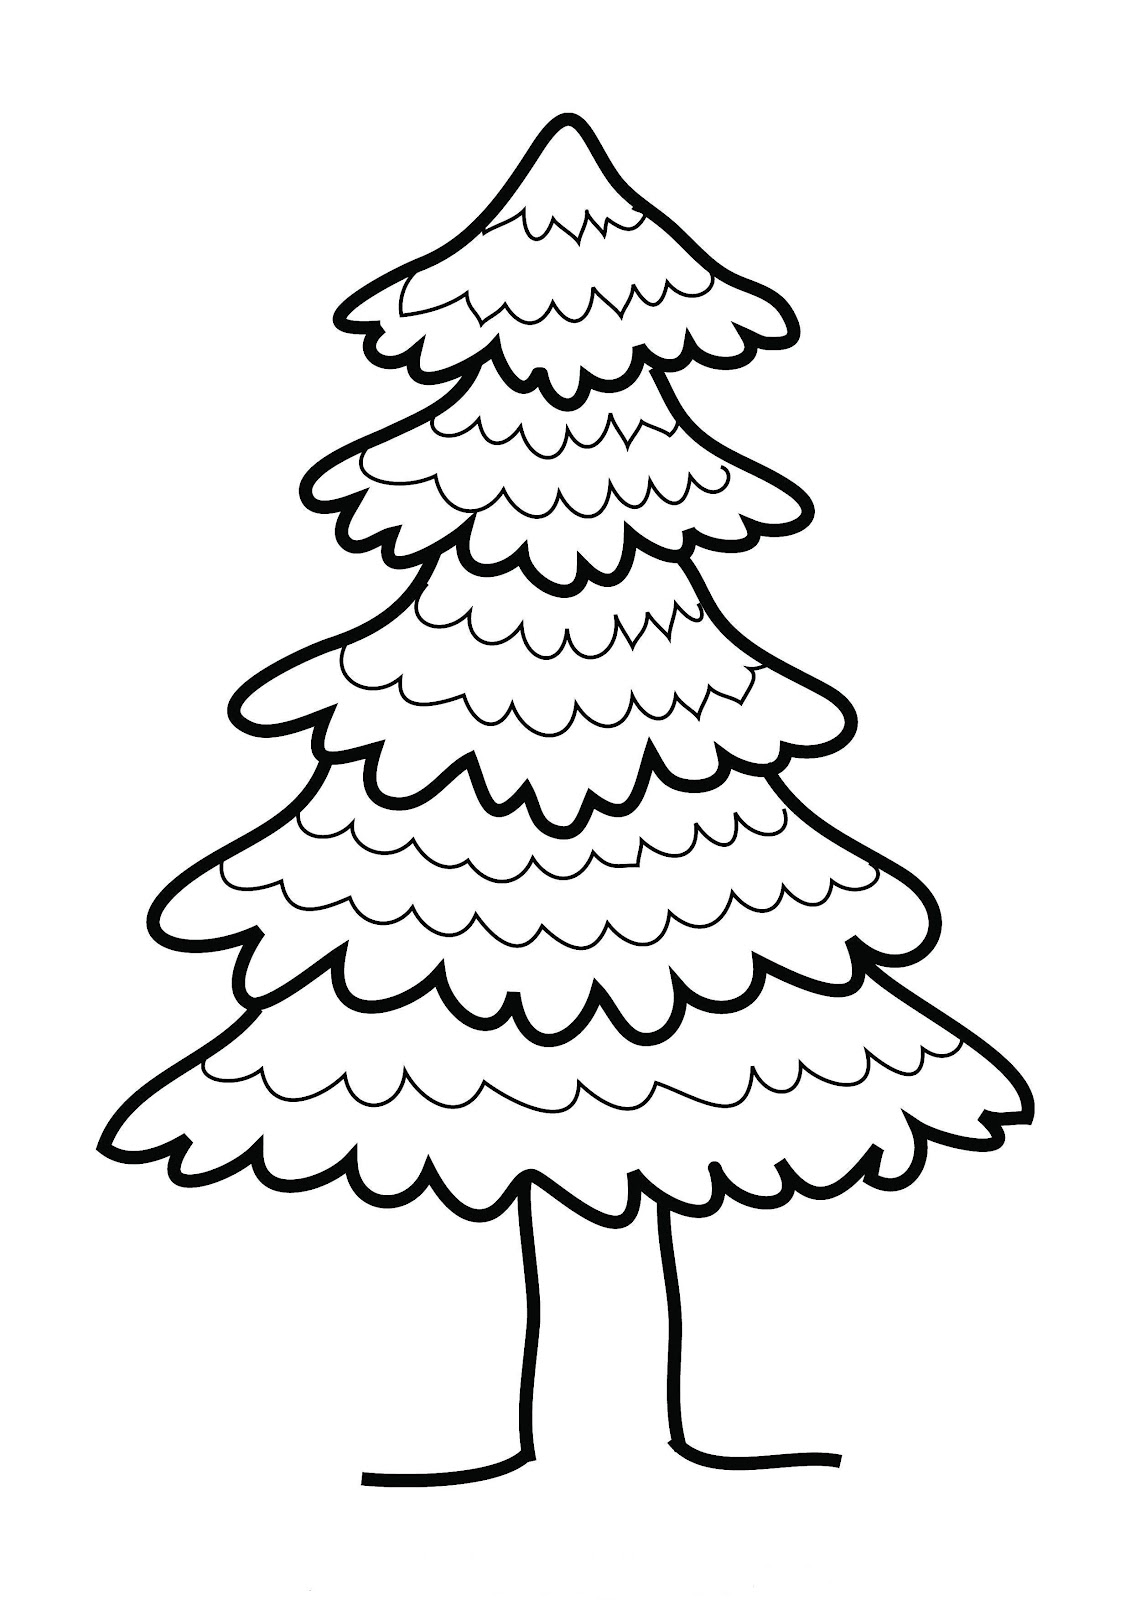 Pine clipart cute. New tree black and